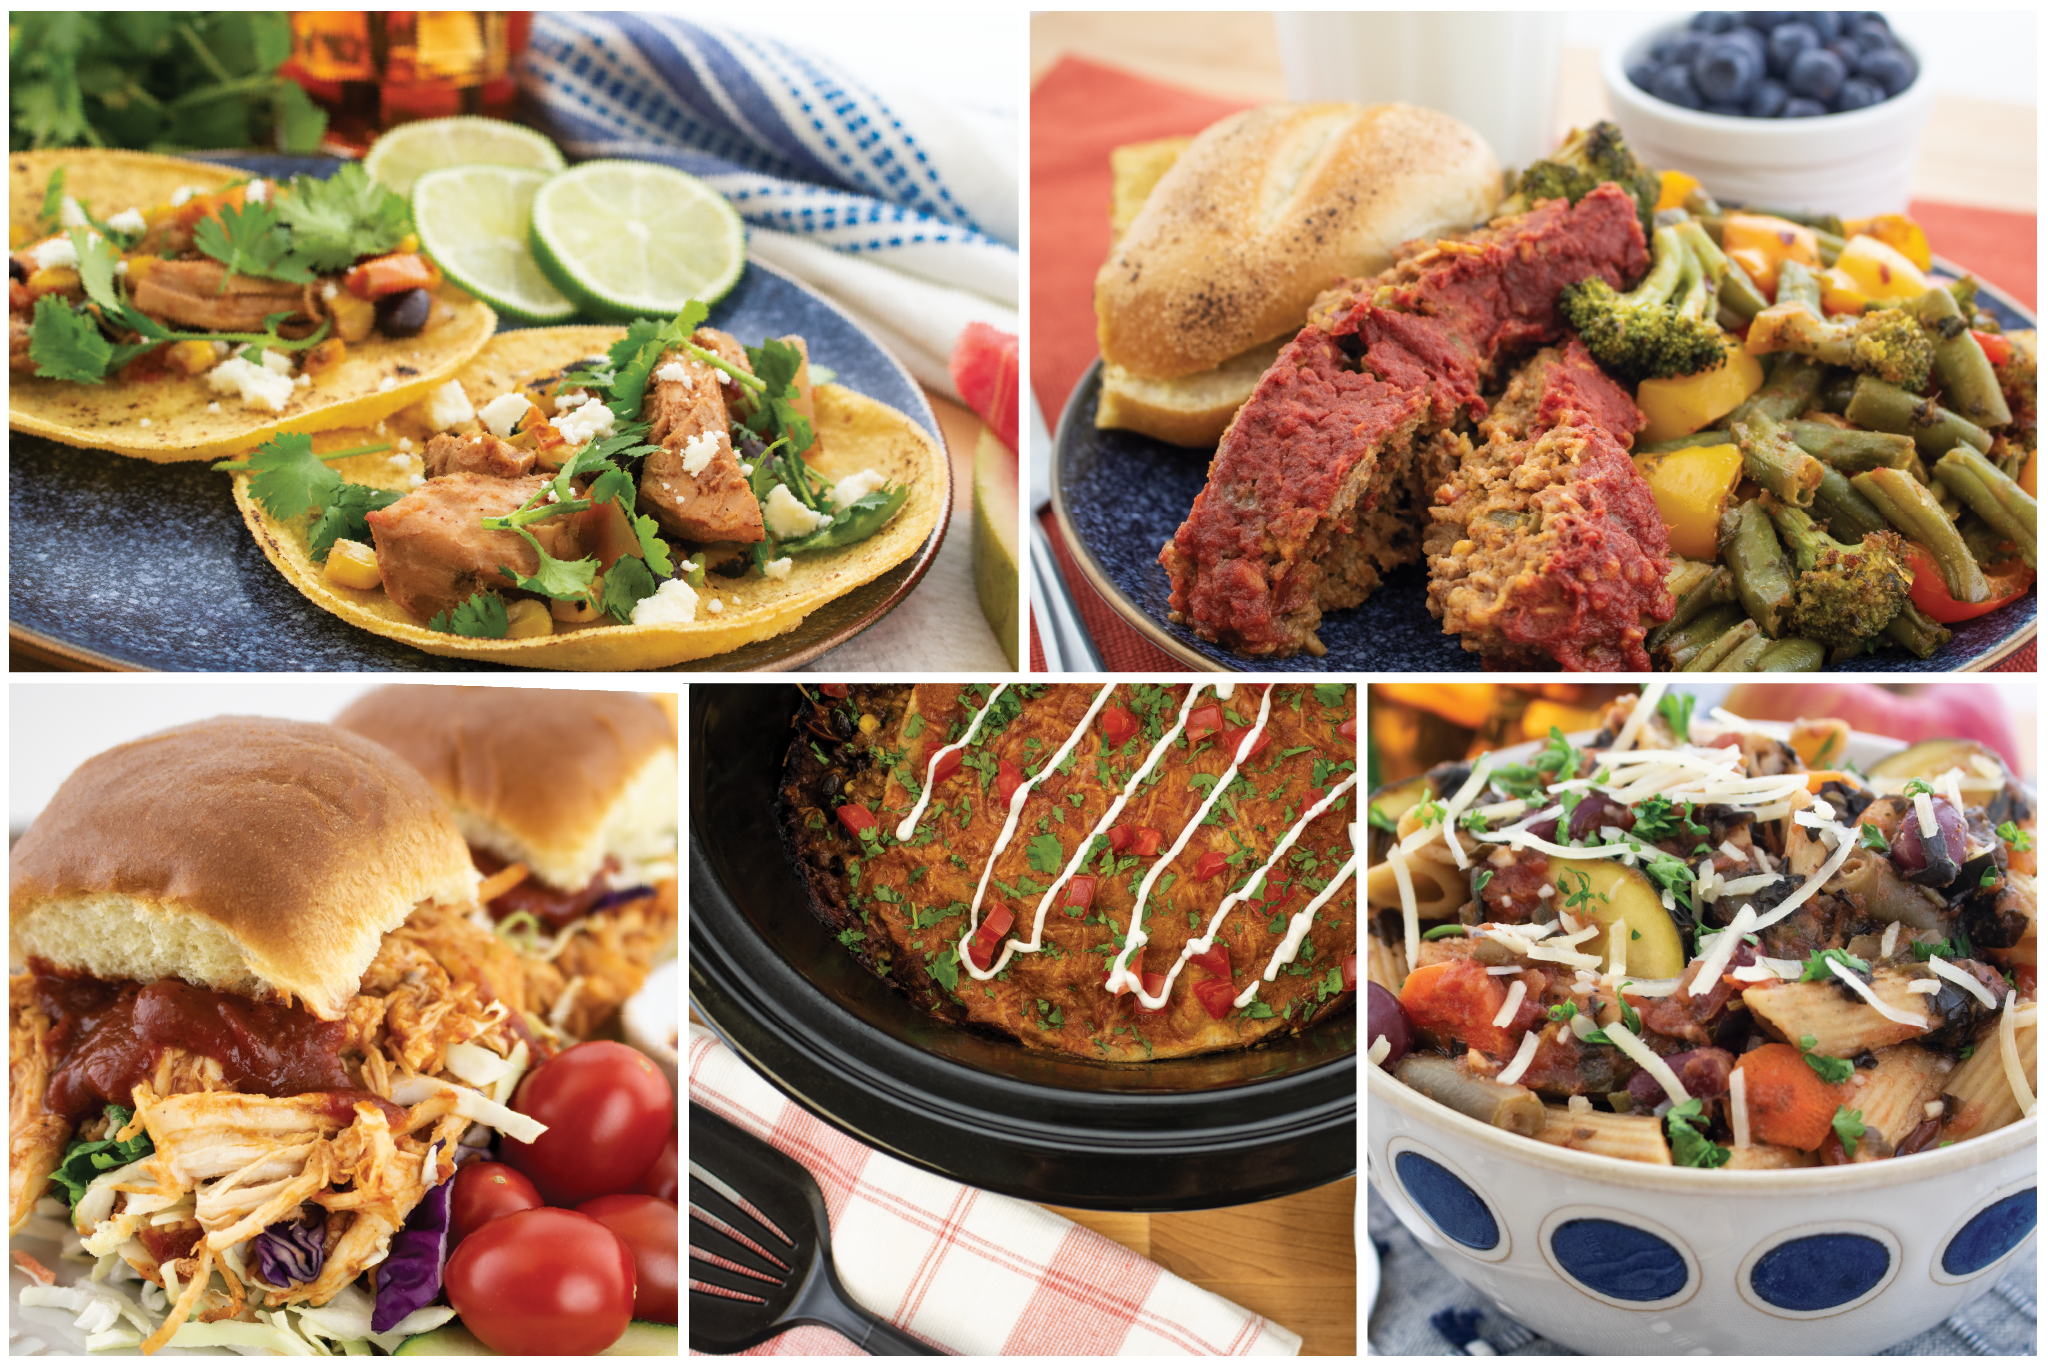 Slow cooker recipes montage